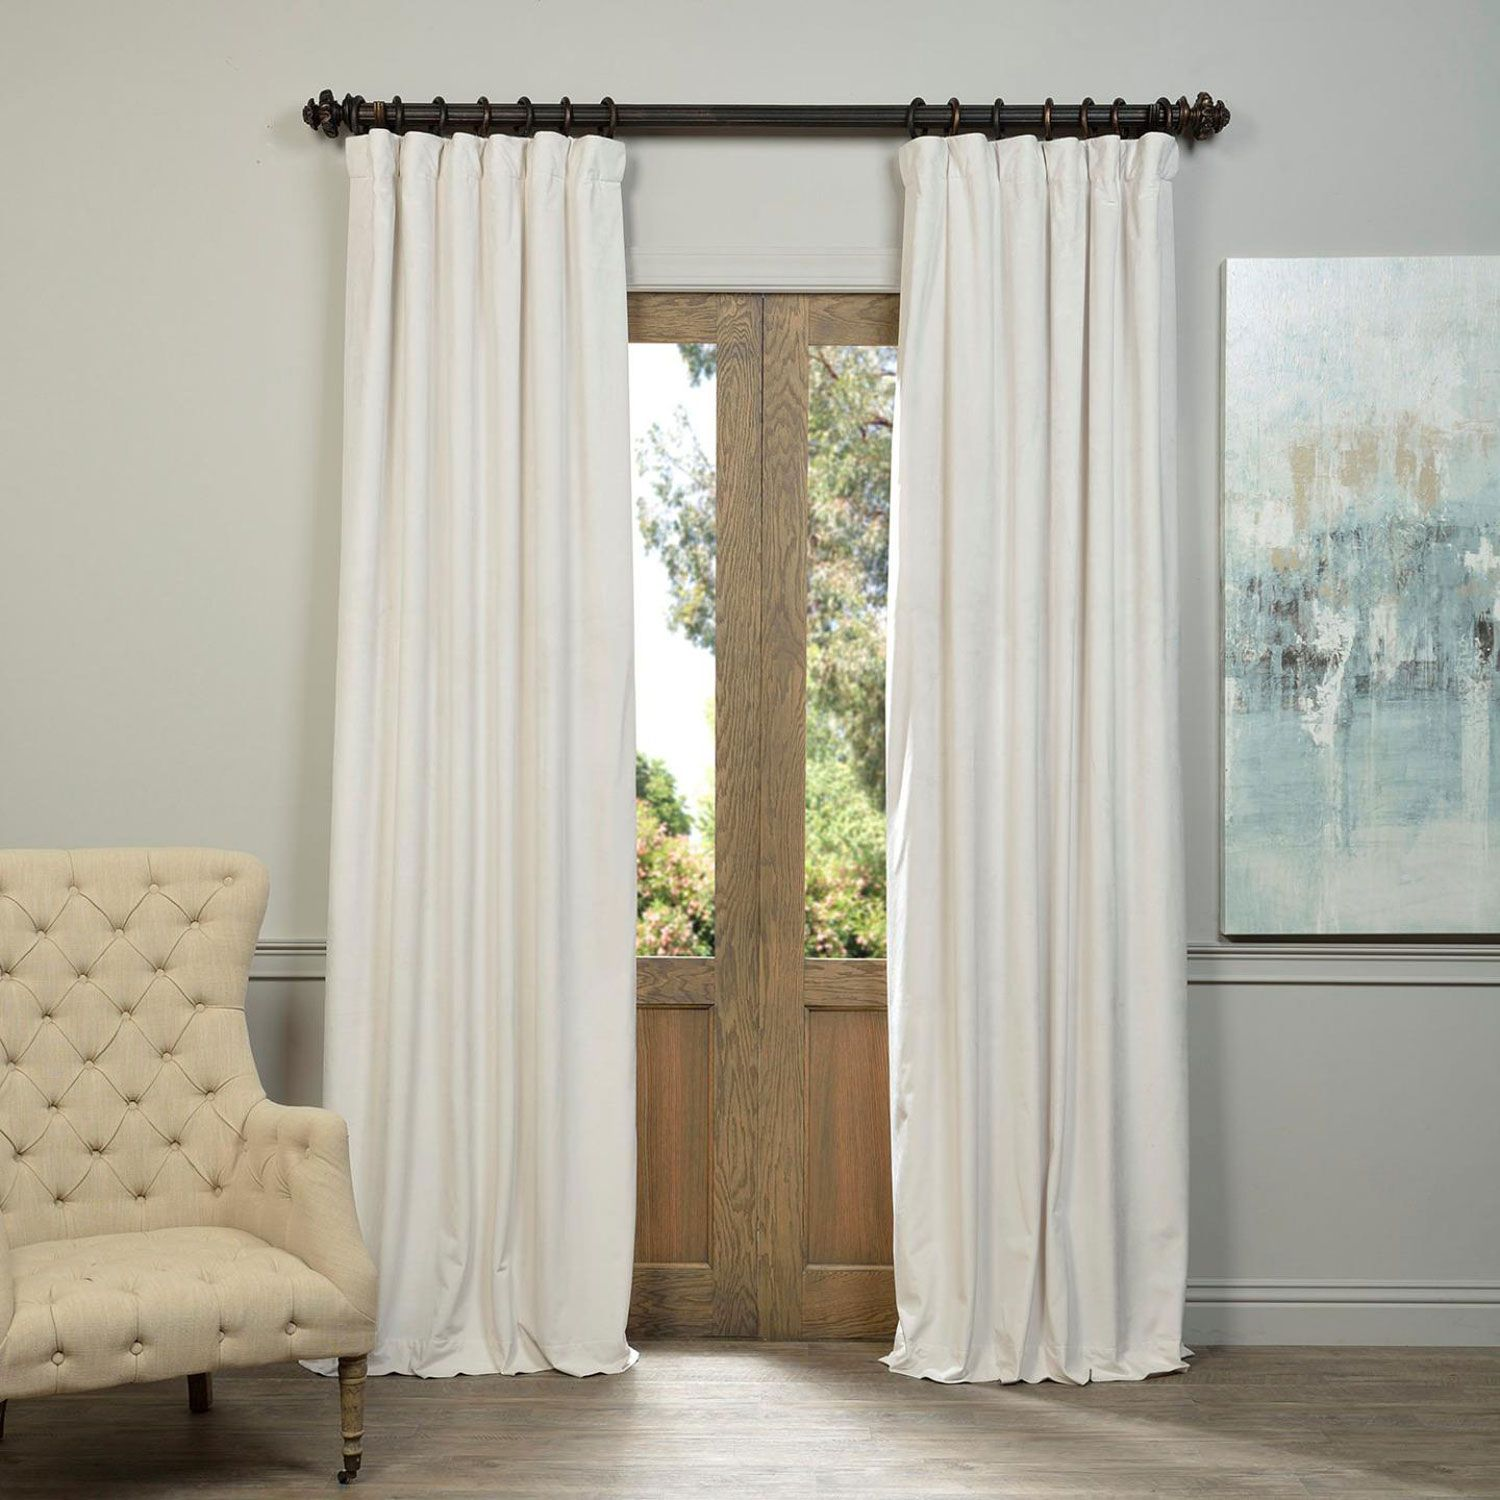 Single Panel Curtain For Sliding Glass Door Home Design Ideas With Images Door Coverings French Door Coverings